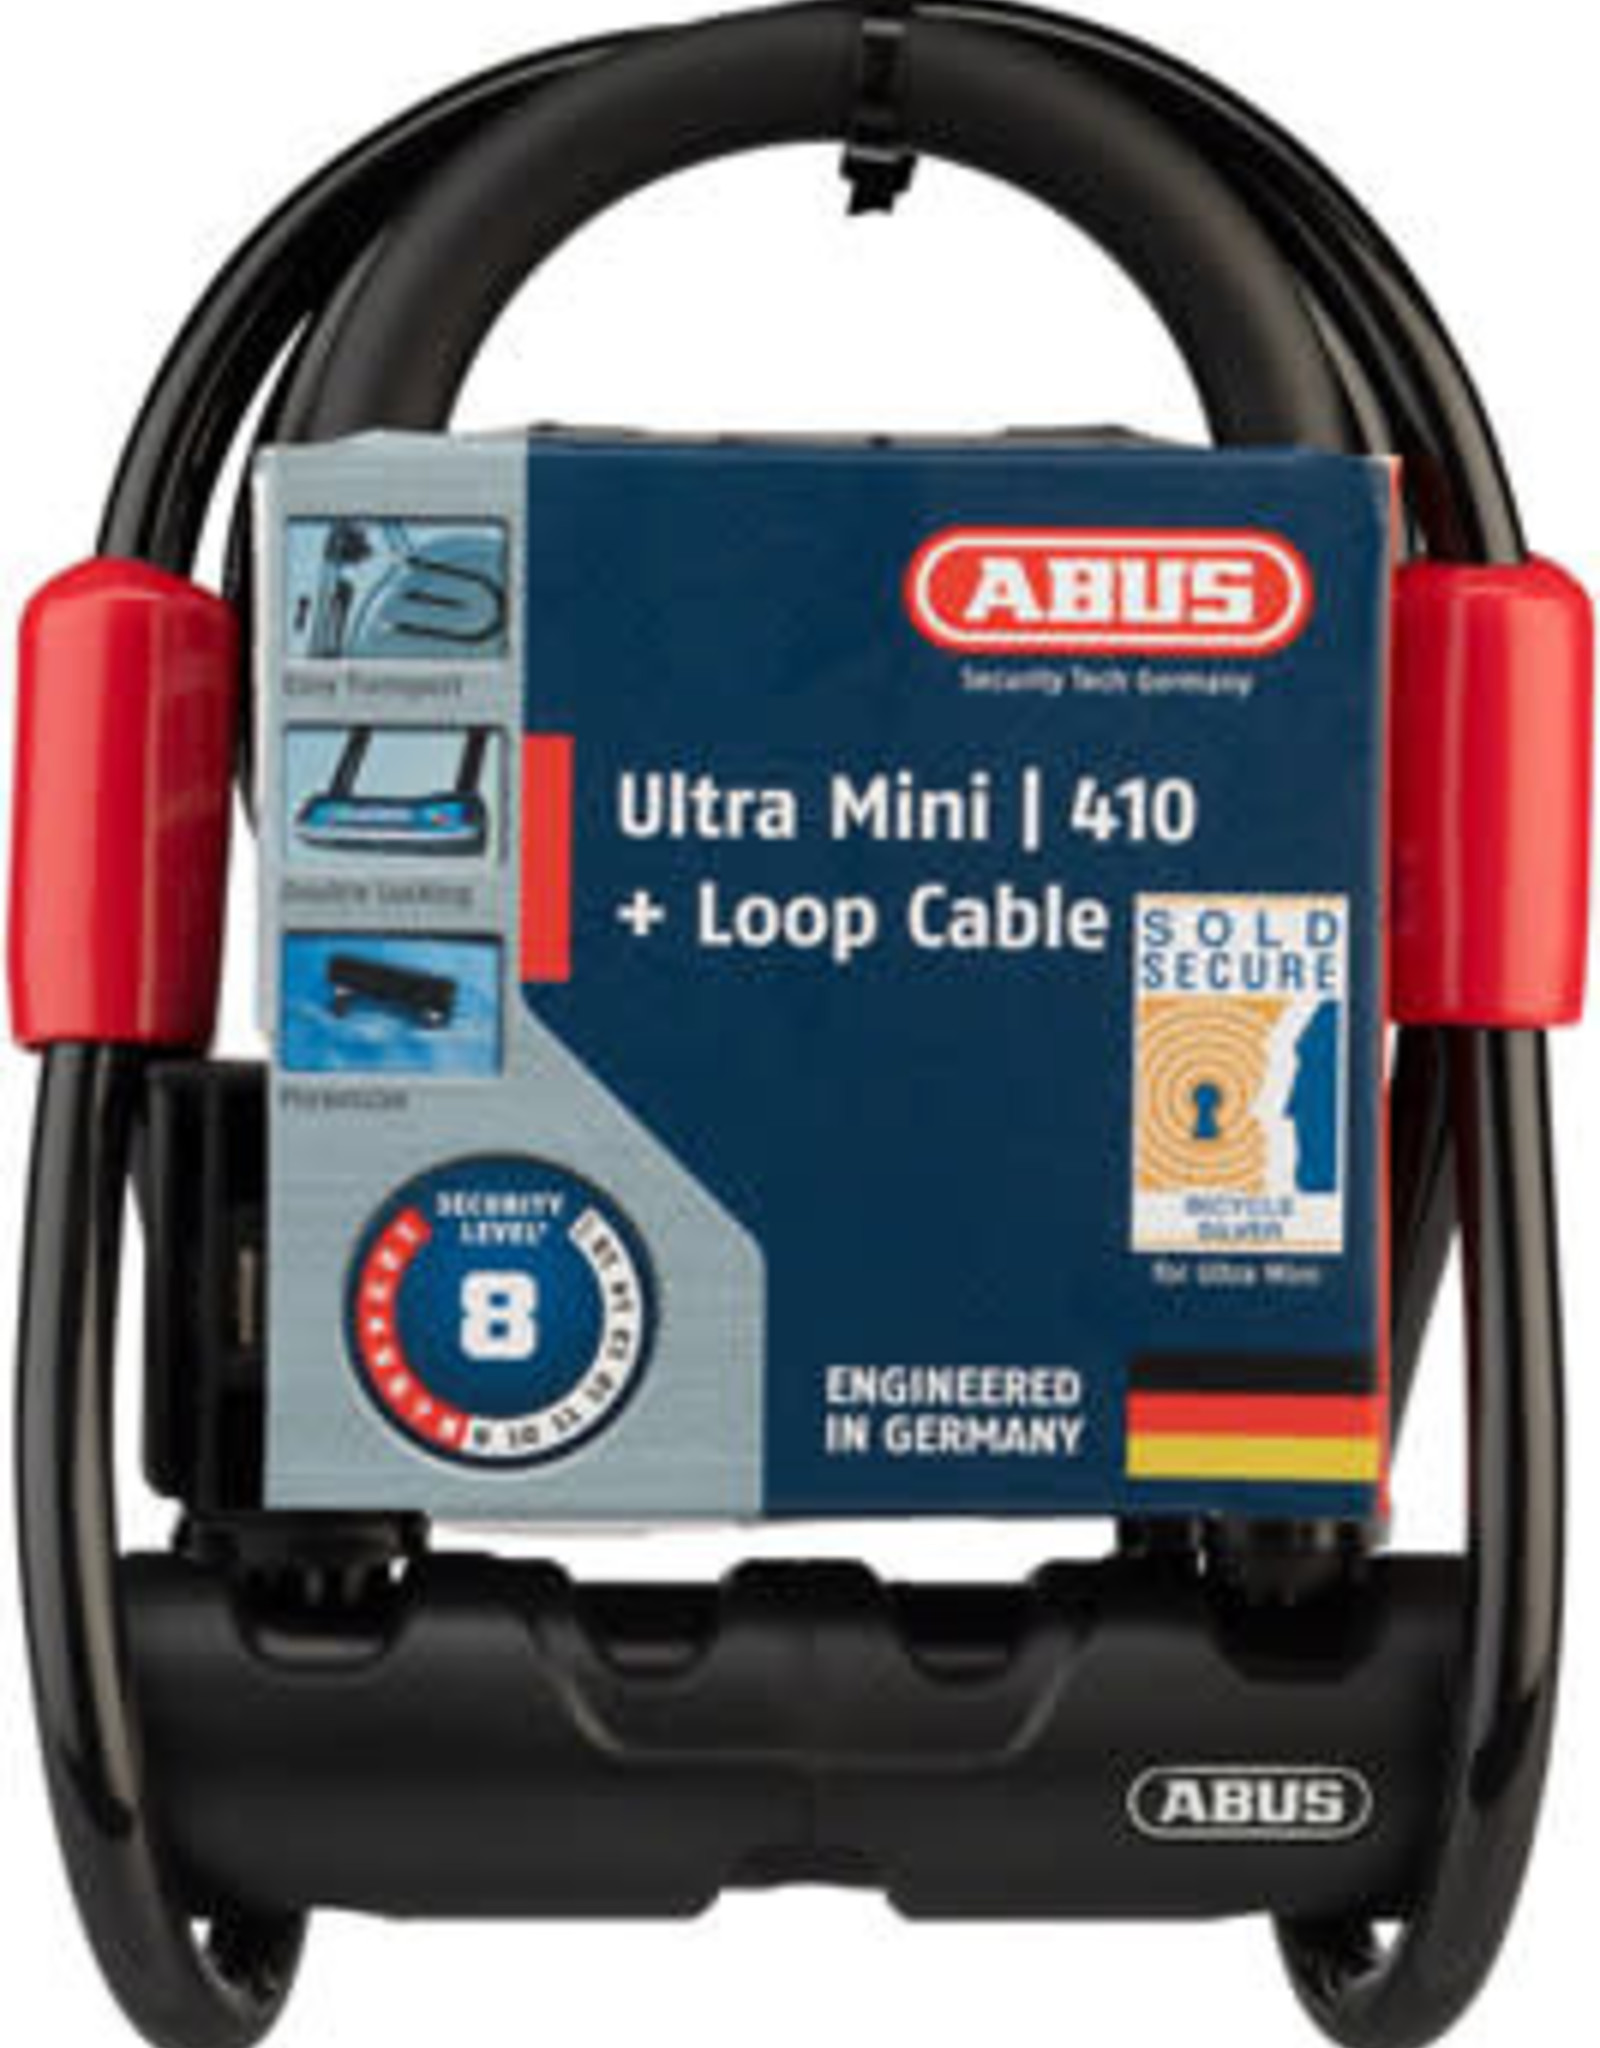 ABUS ABUS Lock - Ultra Mini 410 + Loop Cable